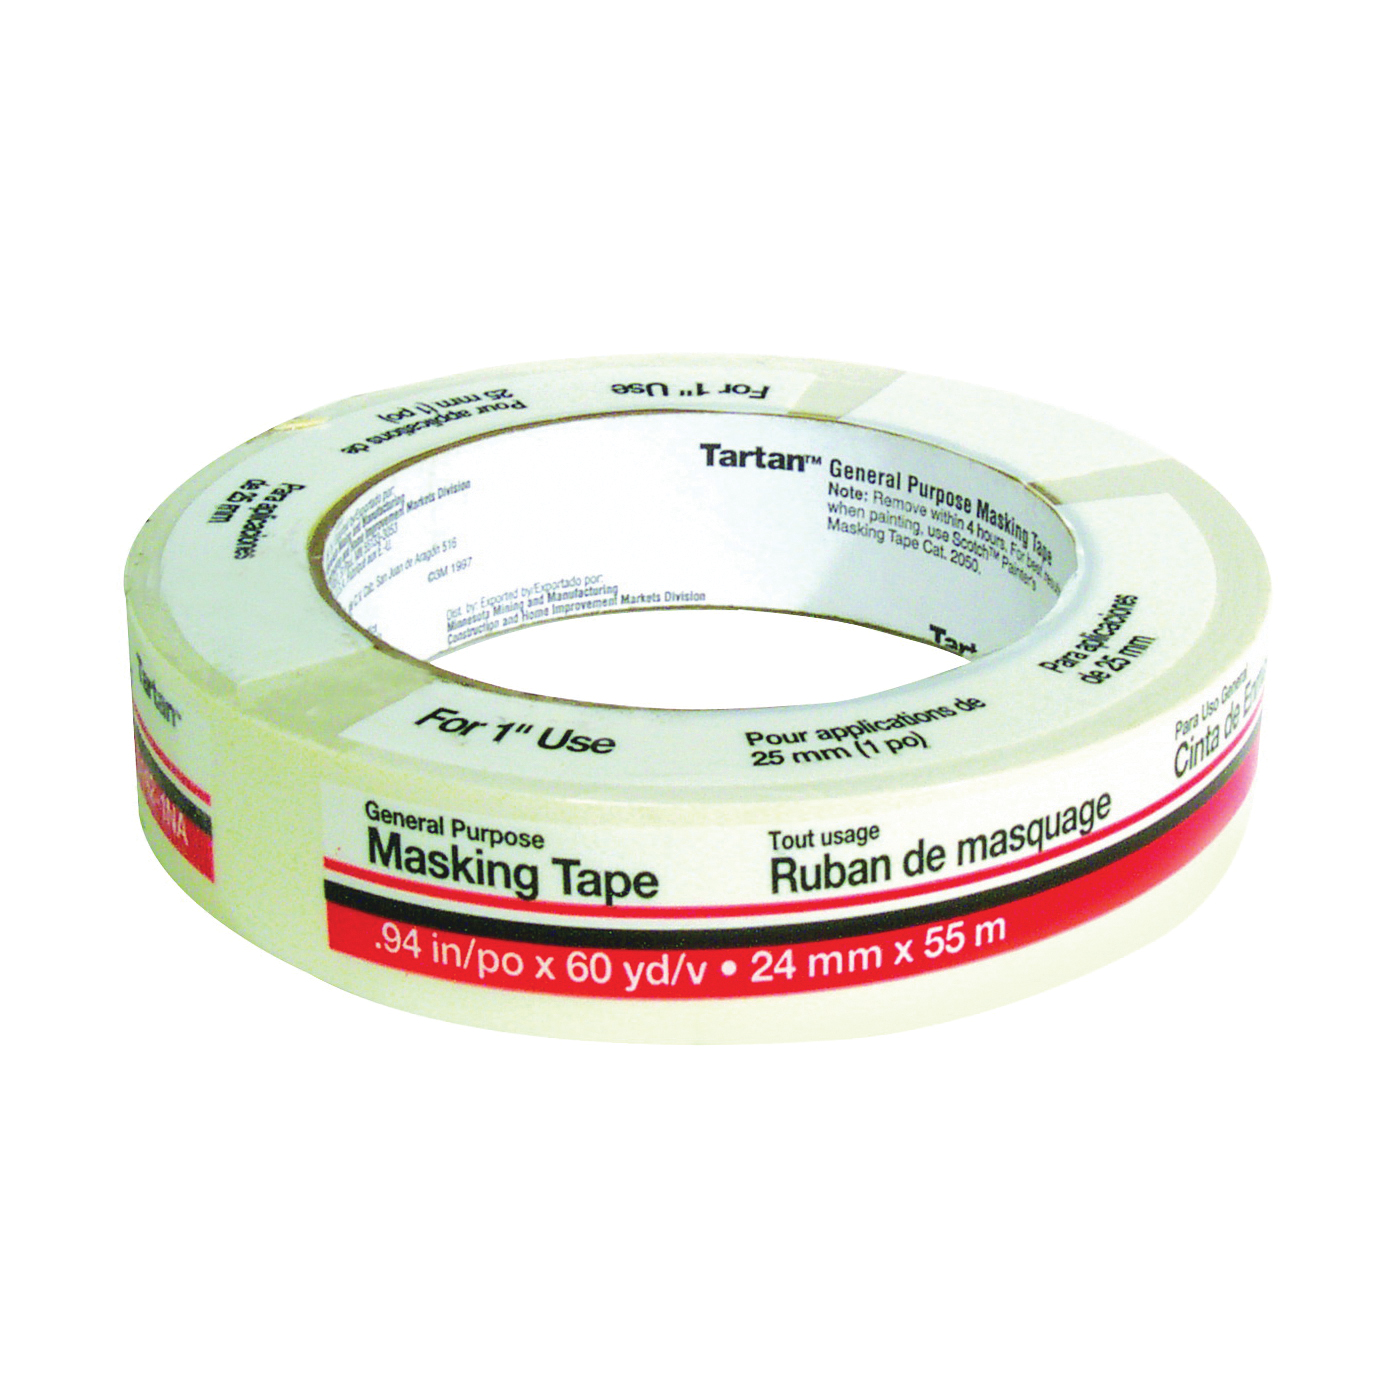 Picture of 3M Tartan 5142.1 Masking Tape, 60 yd L, 1 in W, Crepe Paper Backing, Tan